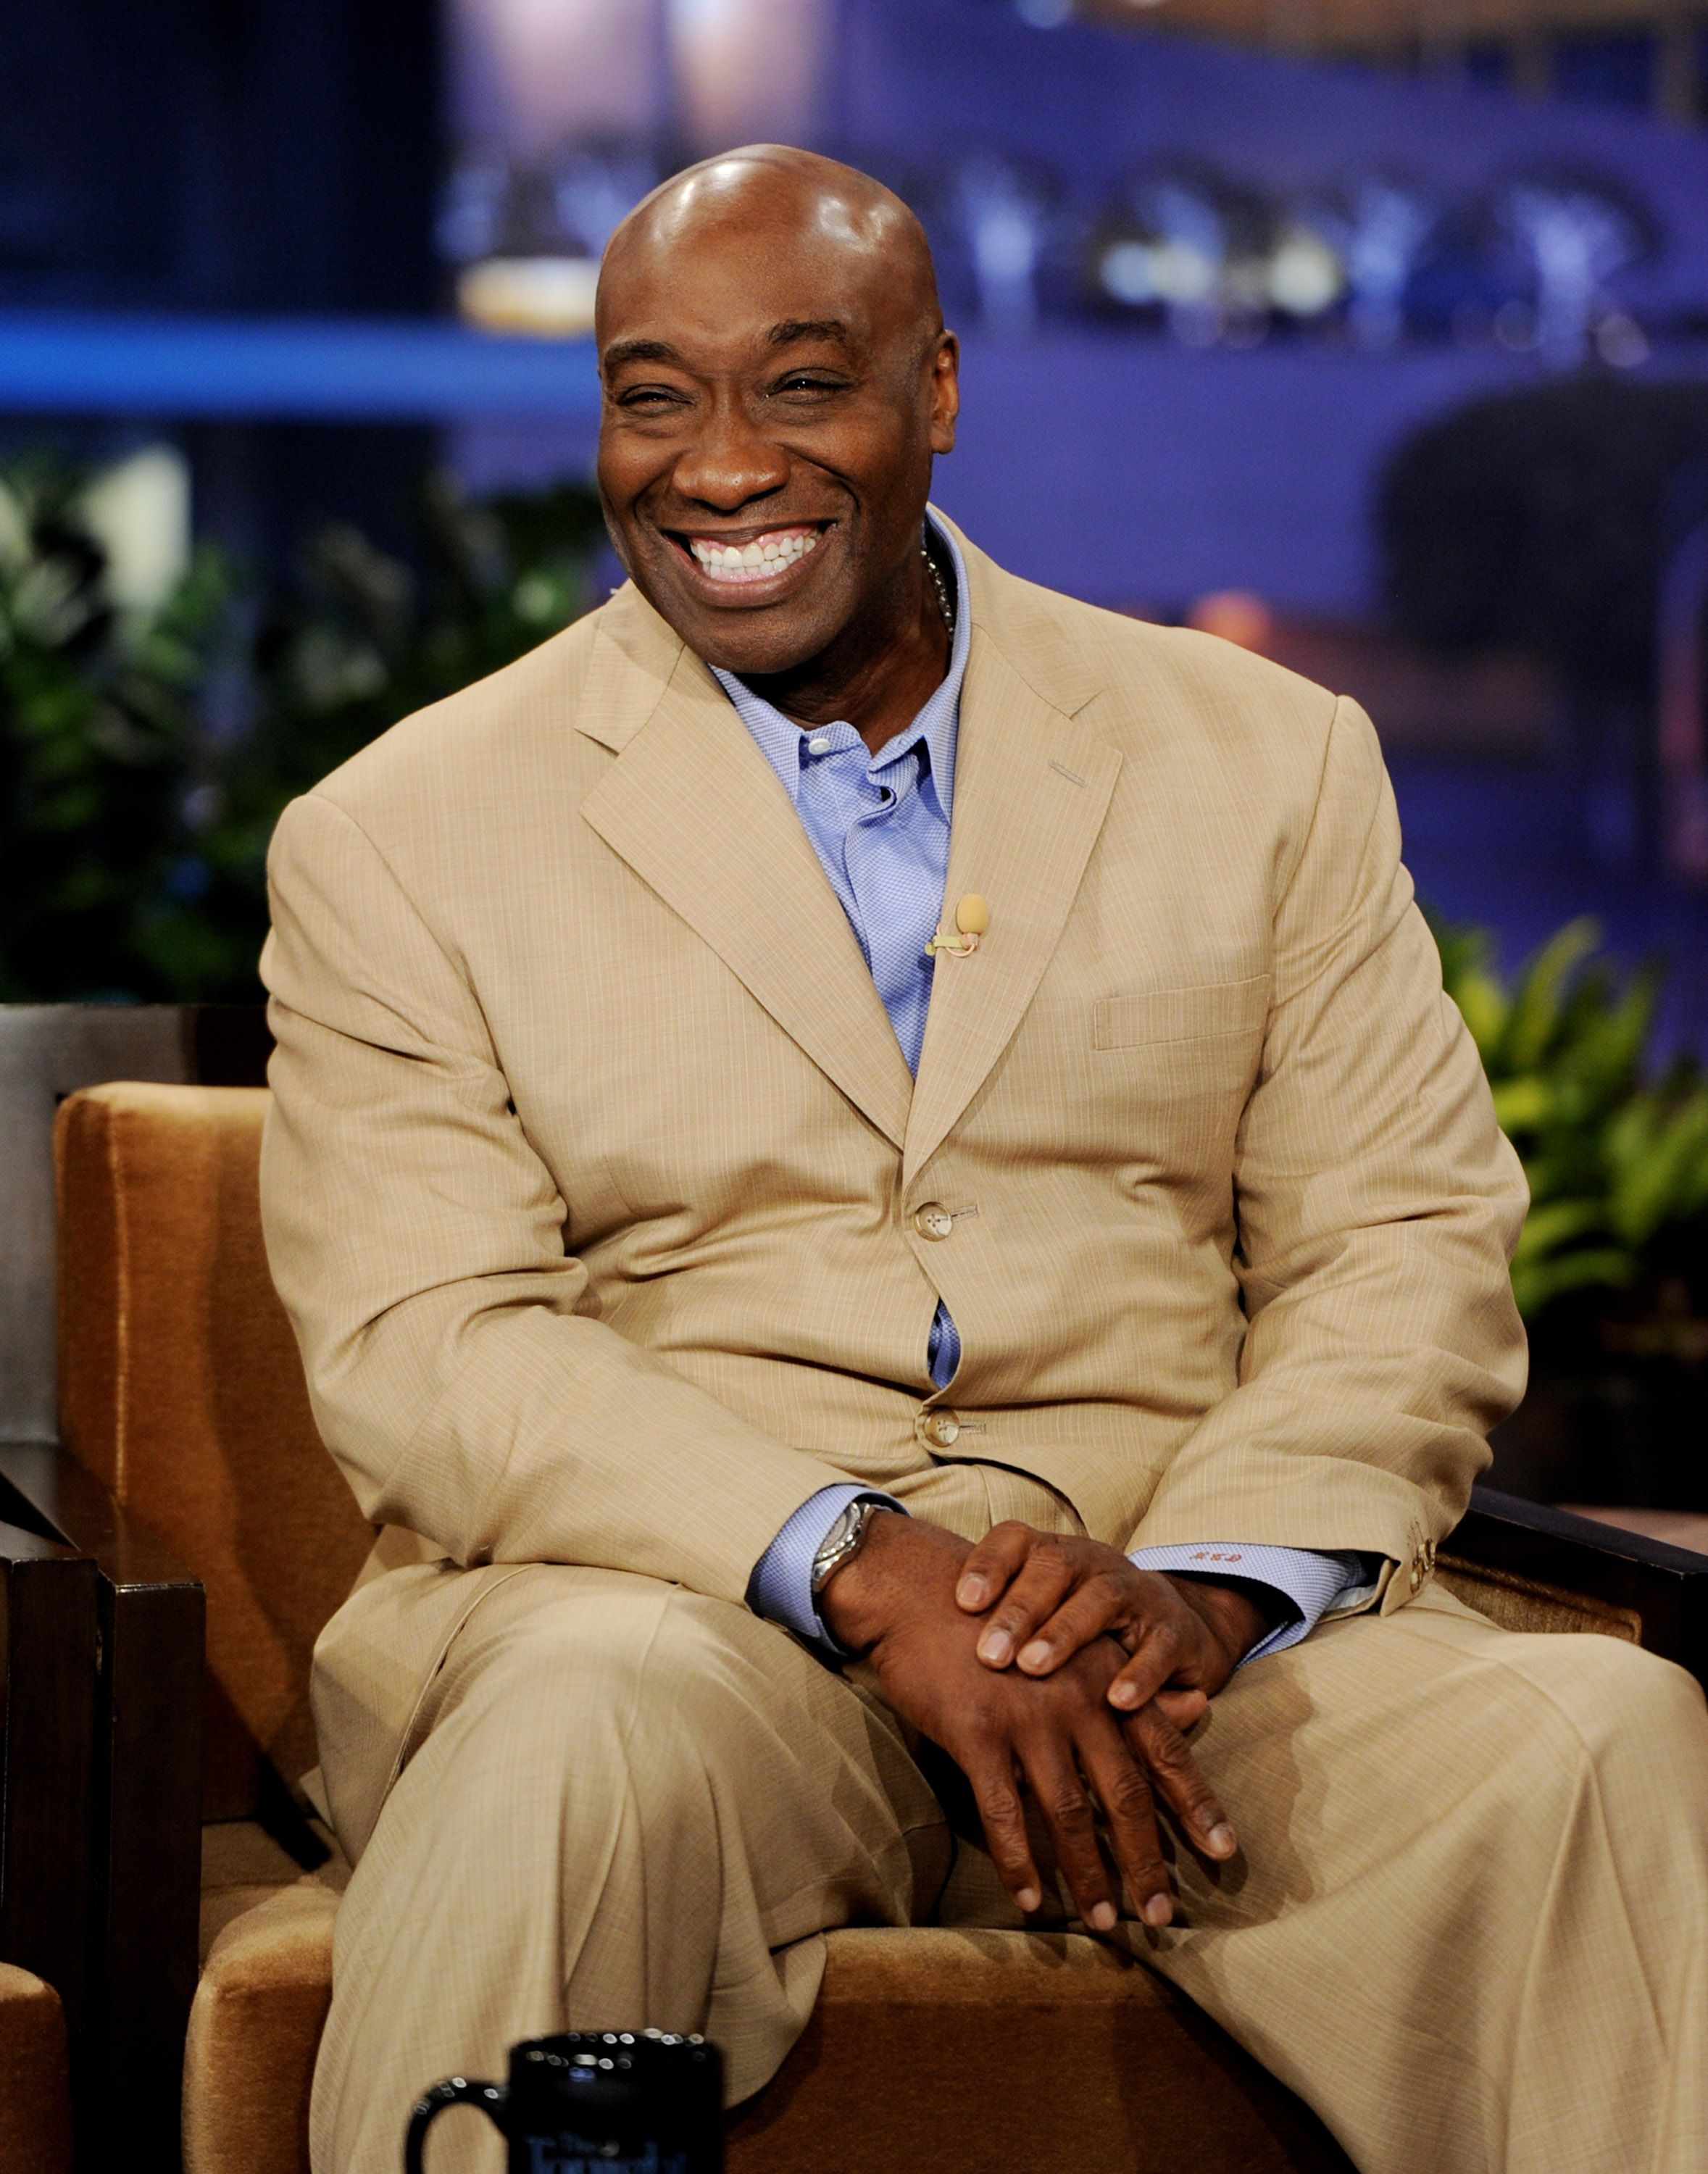 Michael Clarke Duncan appears on the Tonight Show With Jay Leno at NBC Studios on February 20, 2012 in Burbank, California. | Source: Getty Images